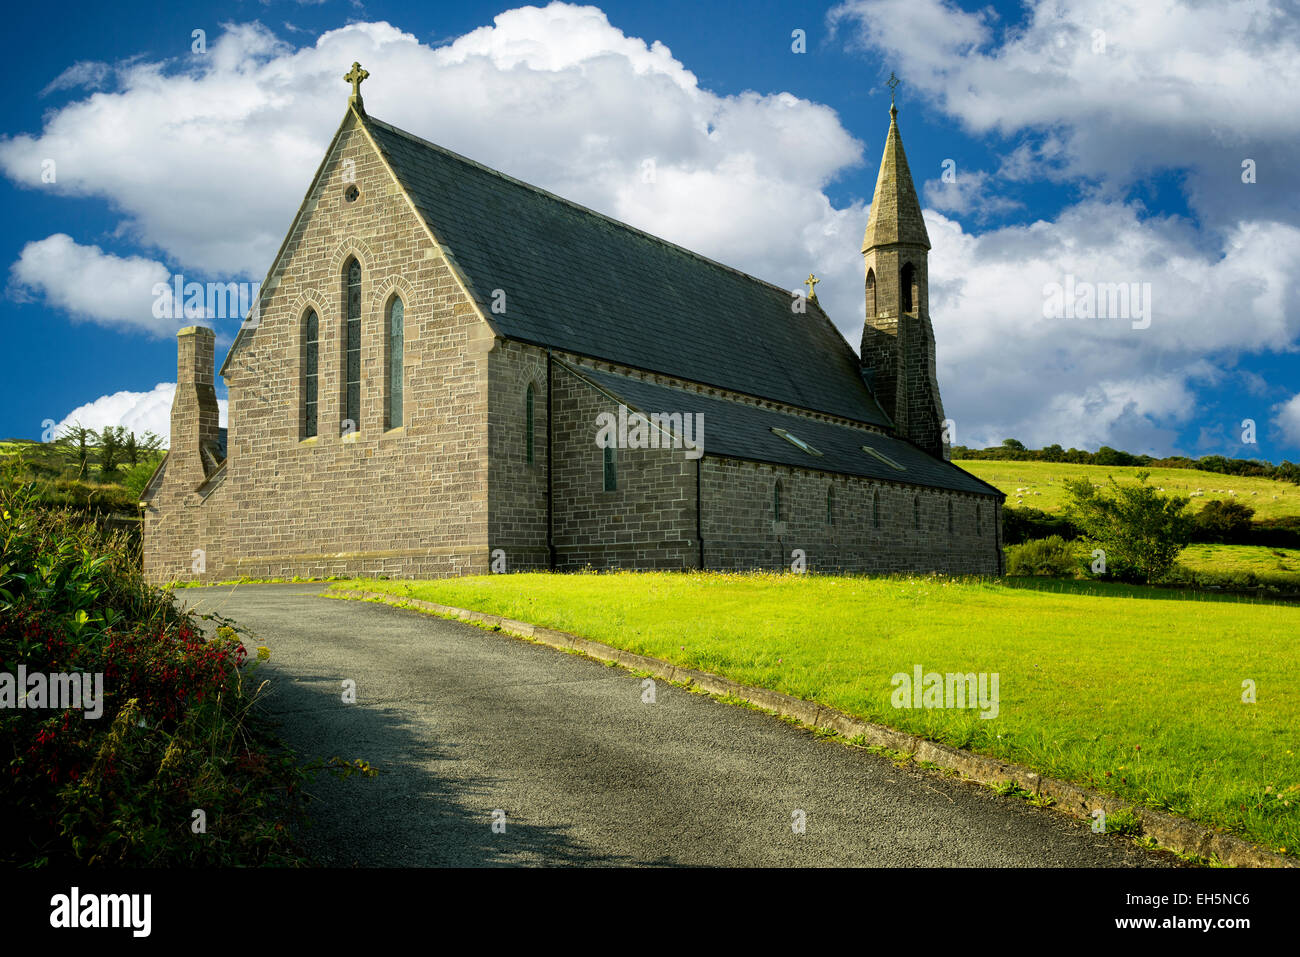 Church of John the Baptist. Catholic church in Dingle, Ireland - Stock Image